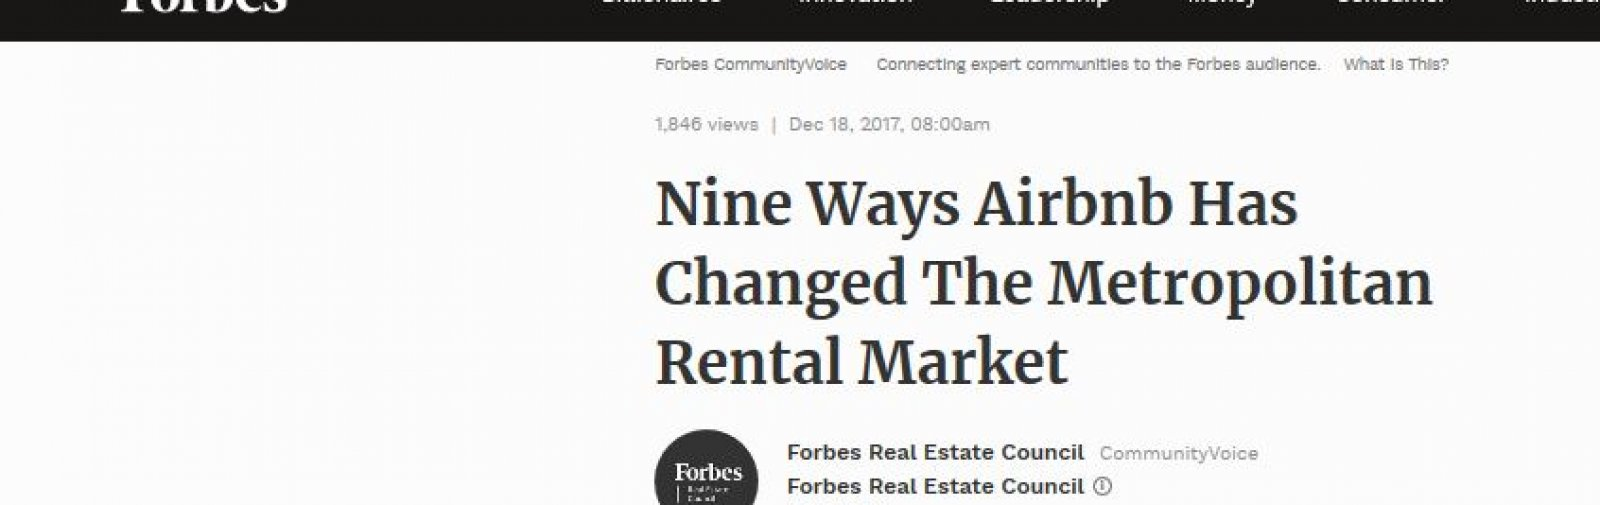 Nine Ways Airbnb Has Changed The Metropolitan Rental Market